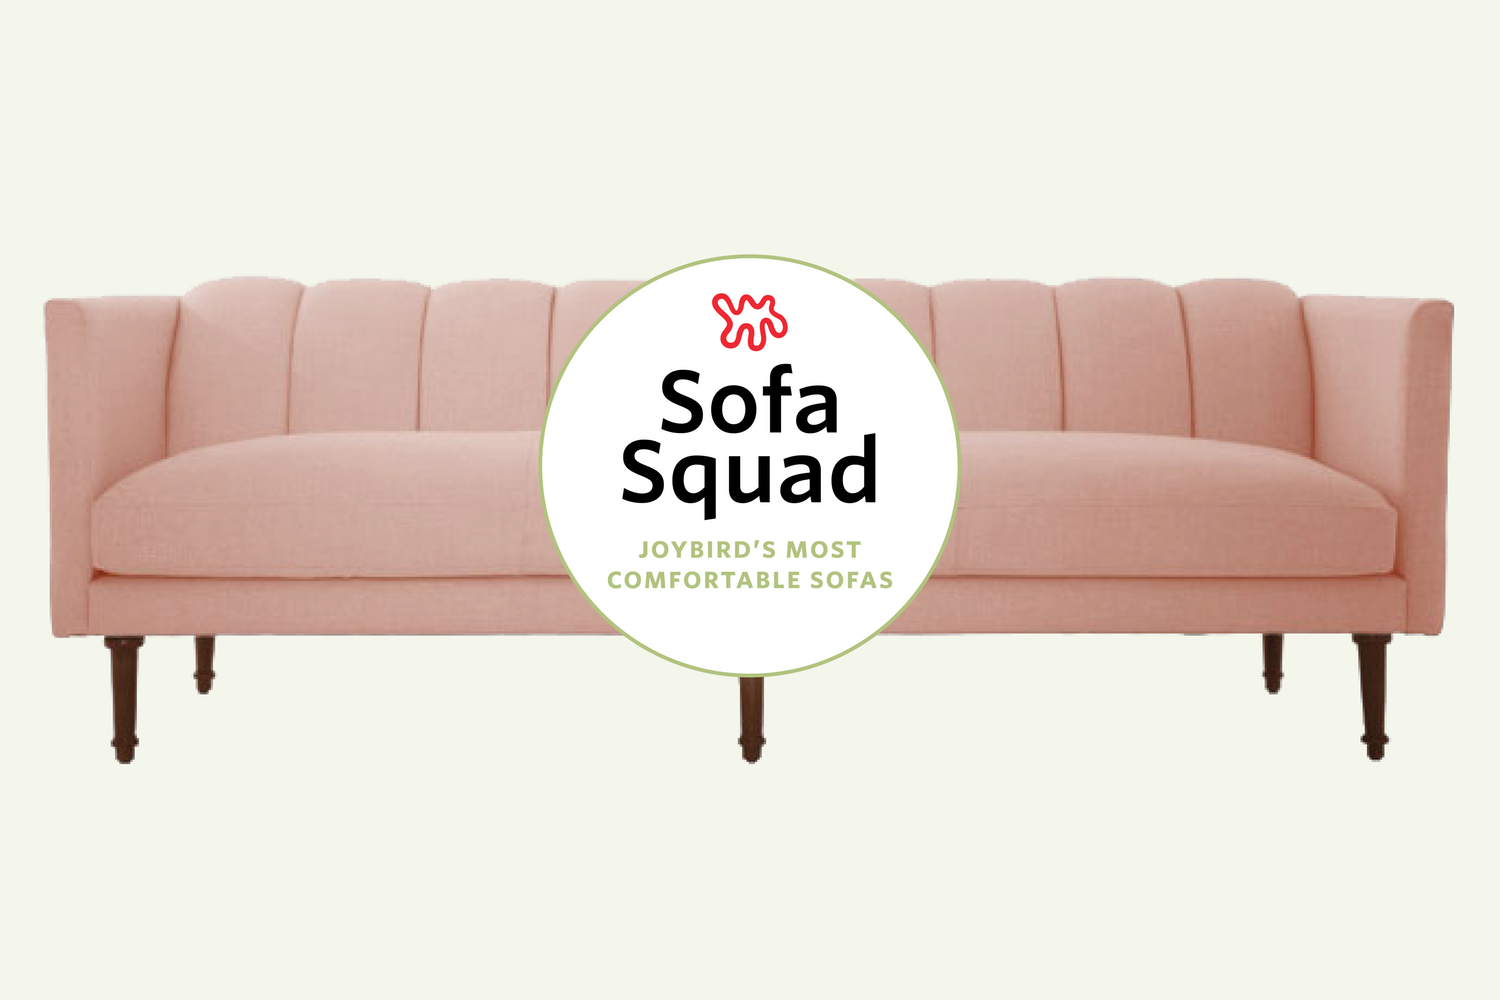 You Asked Us To Test Out Joybird S Online Only Sofas So We Hiked On Over La And Put 17 Models Through The Ringer Here What Thought